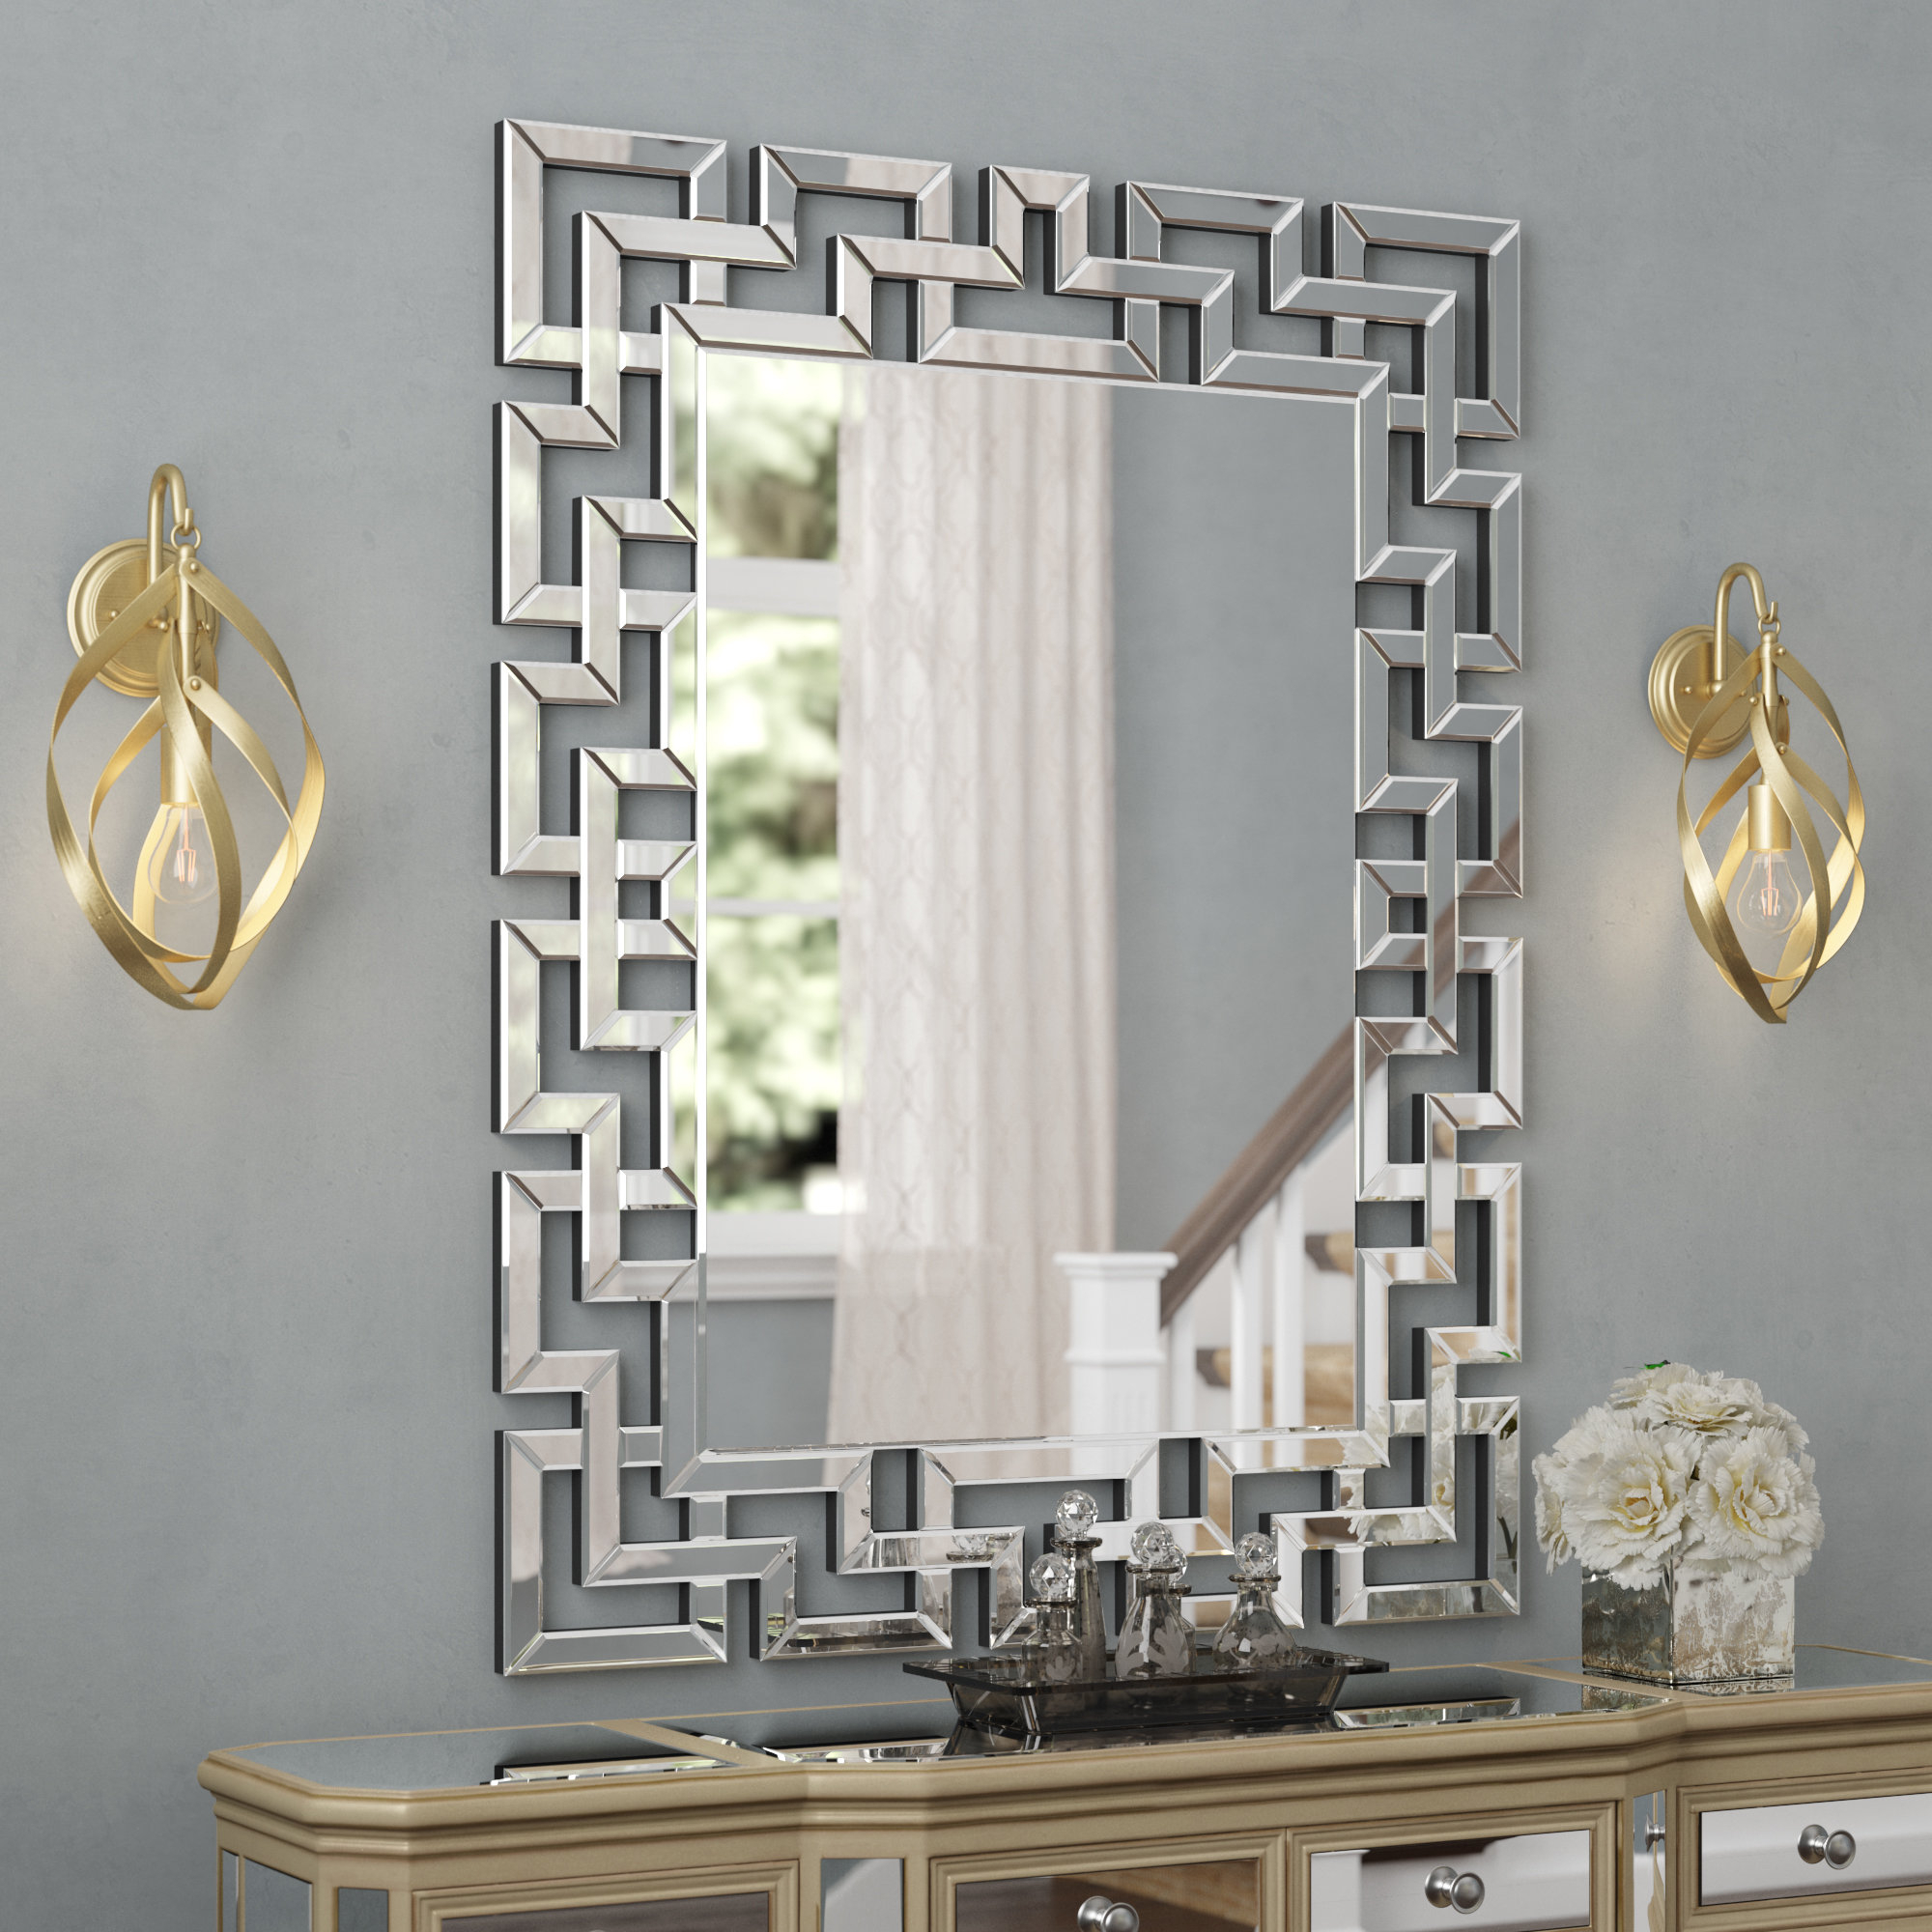 Caja Rectangle Glass Frame Wall Mirror With Regard To Pennsburg Rectangle Wall Mirrors (Image 1 of 20)